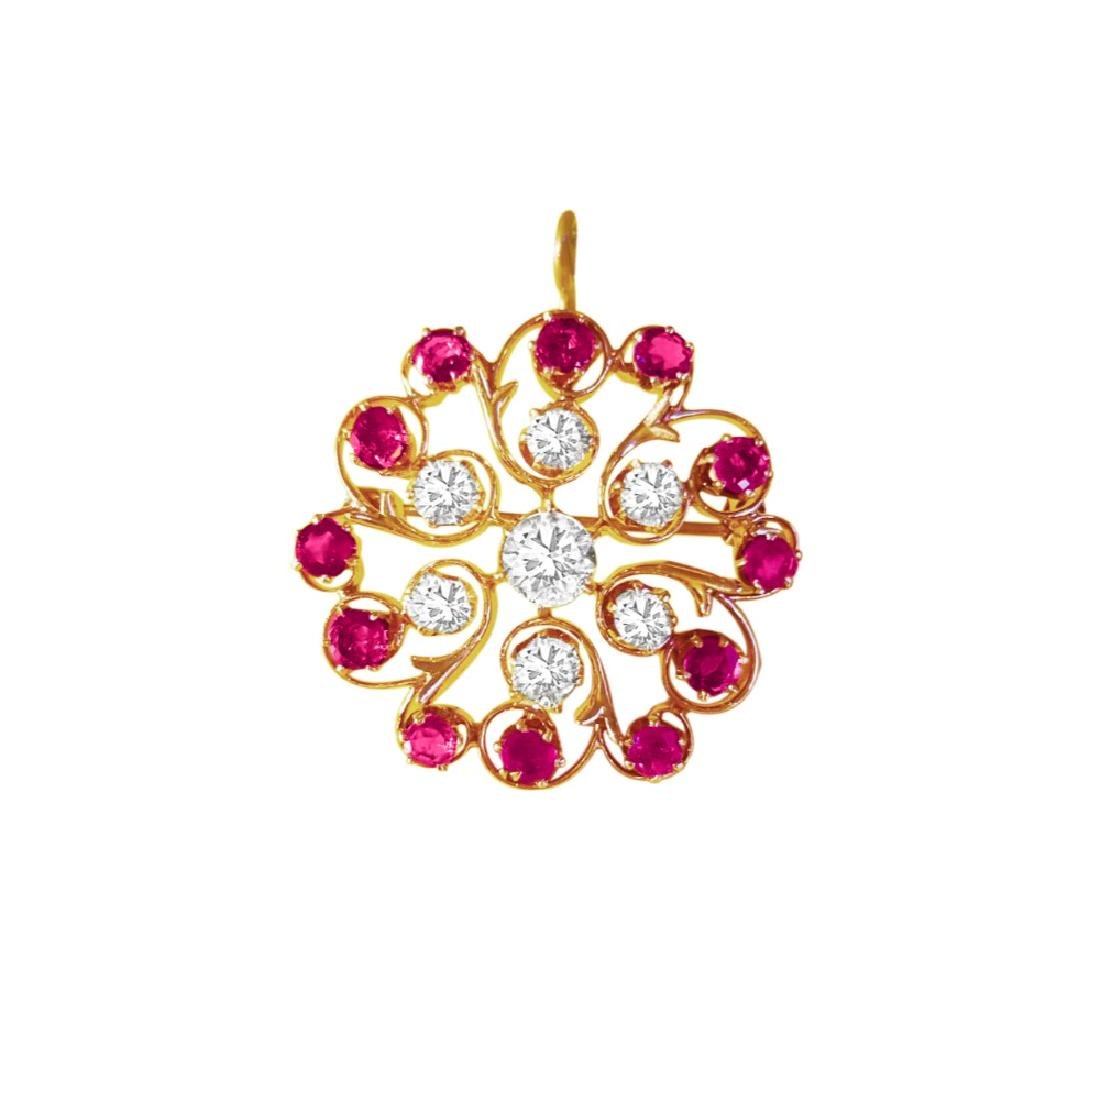 Antique European; 3.70 Ct Diamond and Ruby Pin. (GIA)